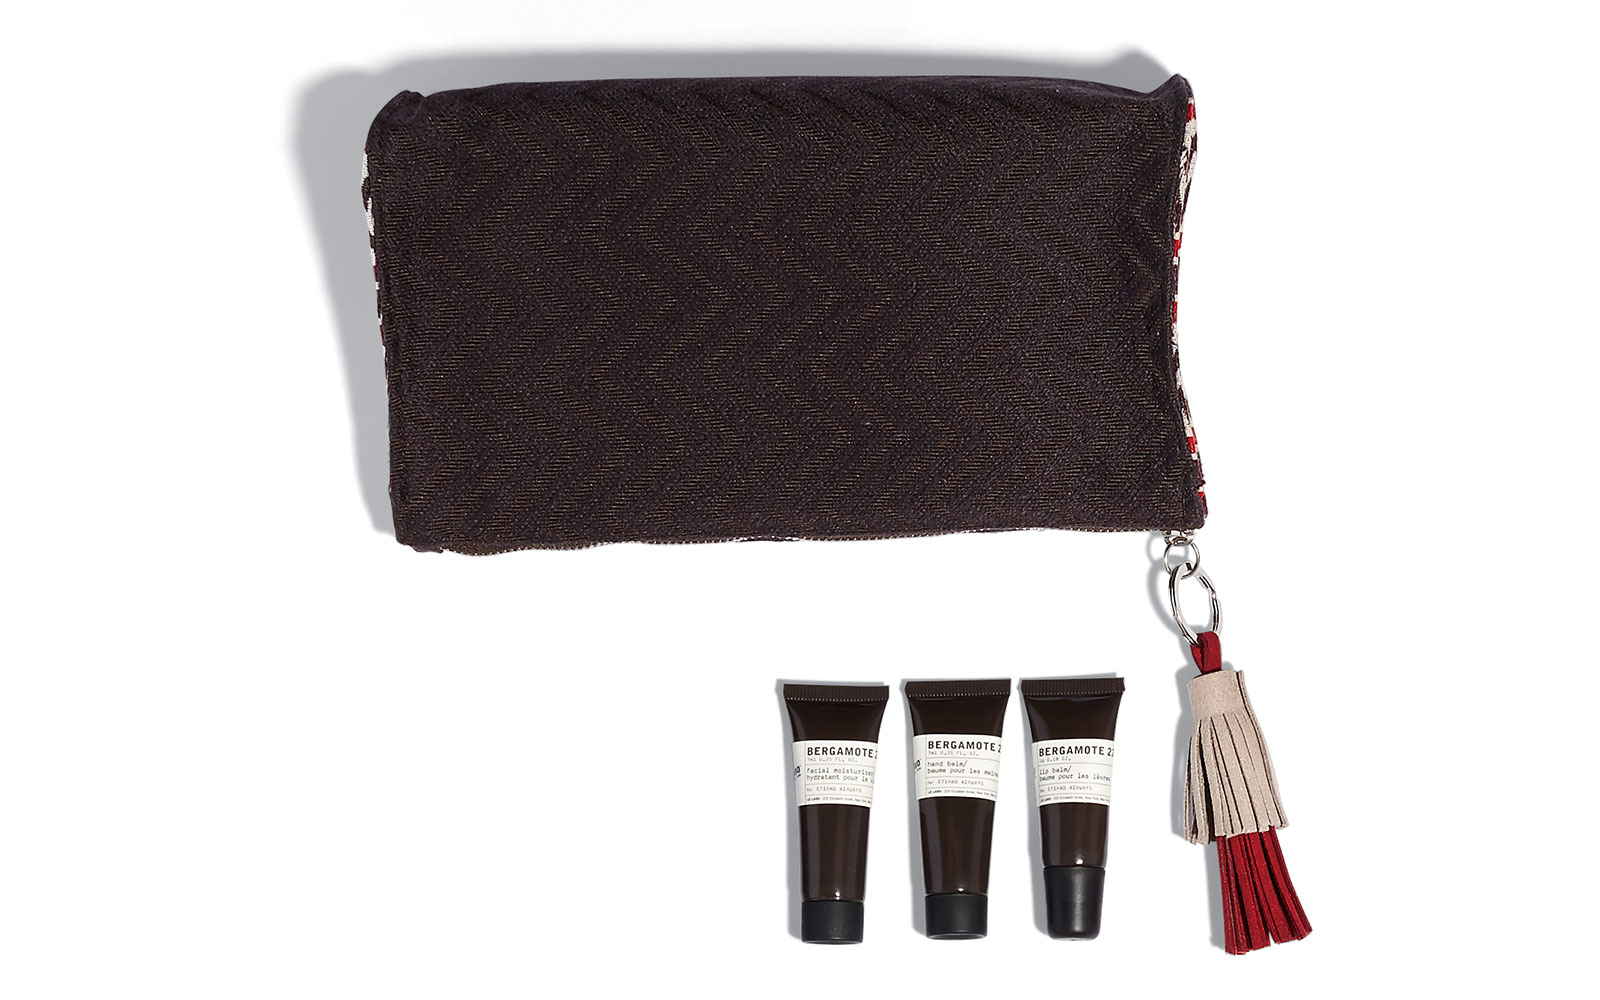 Coolest Airline Amenity Kits: Etihad - Sougha Limited Edition Kits